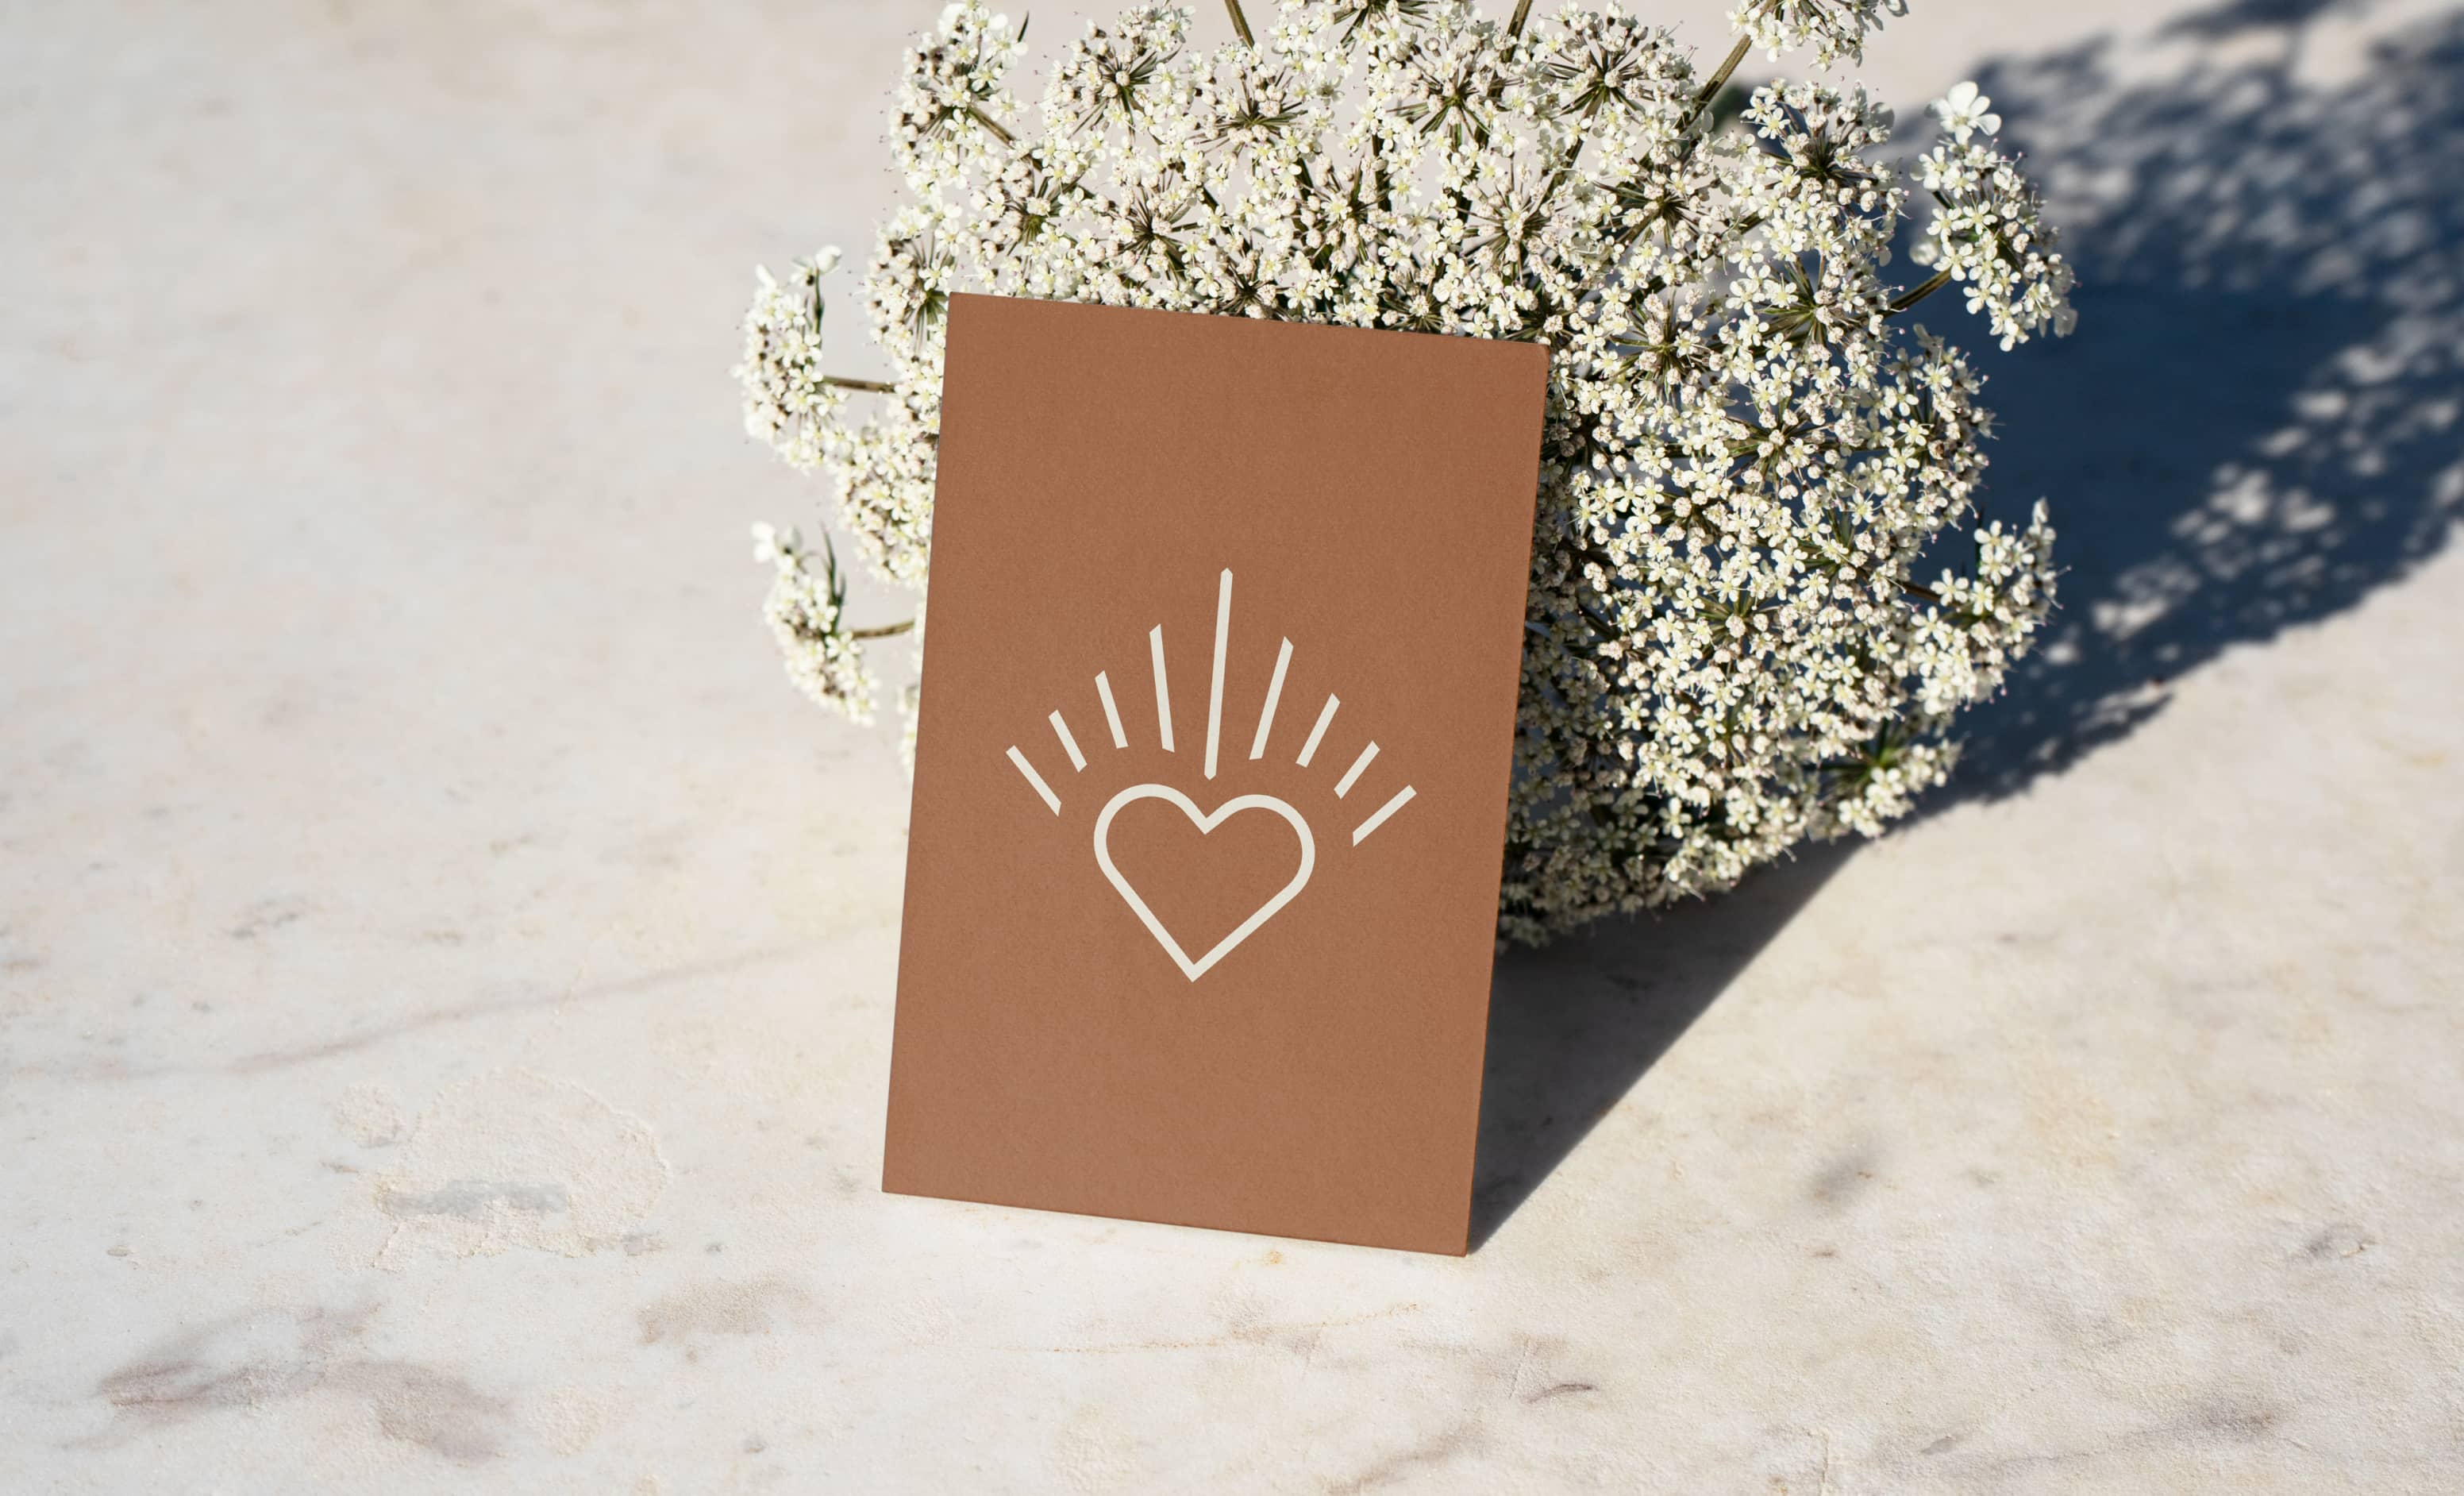 A brown business card with a heart-shaped icon resting on a bouquet of flowers